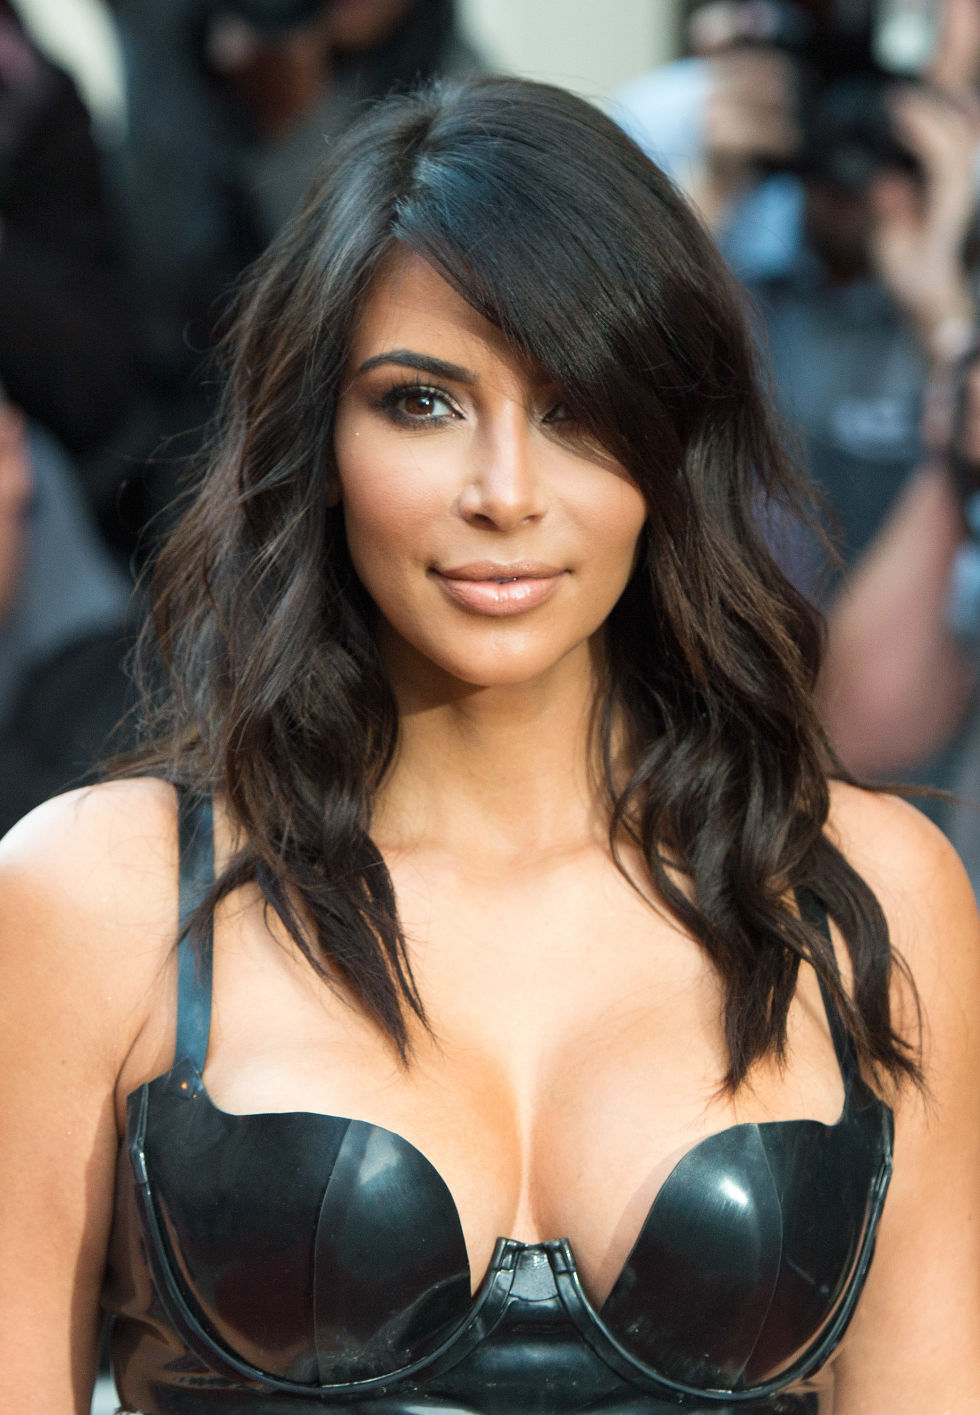 Wavy Hair  Haircuts On Celebrities How To Get Wavy Hair - Wavy hair